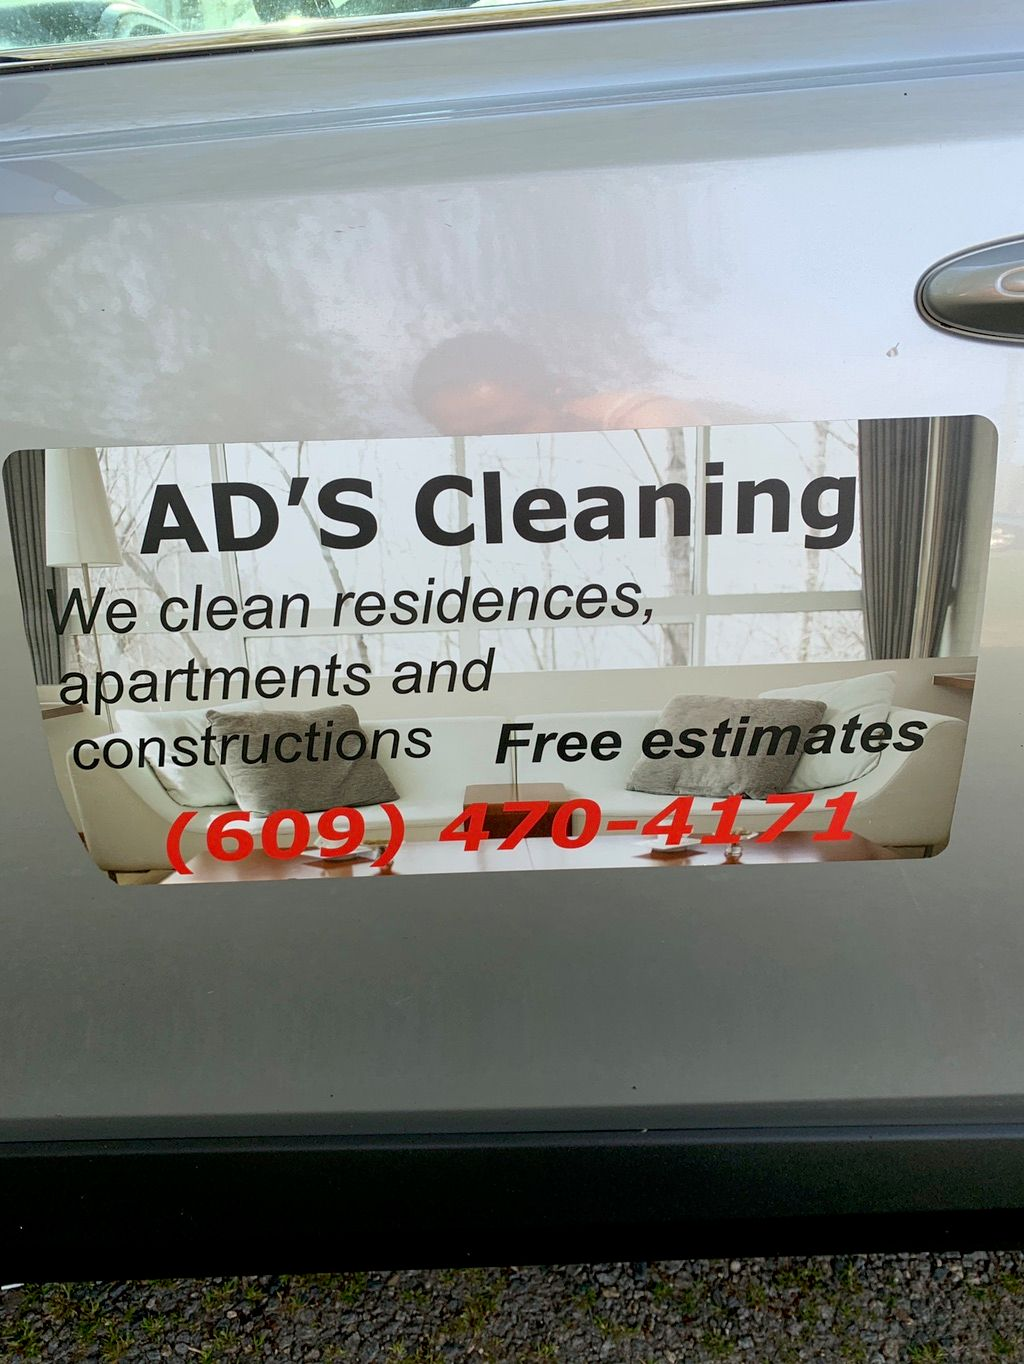 AD'S Cleaning